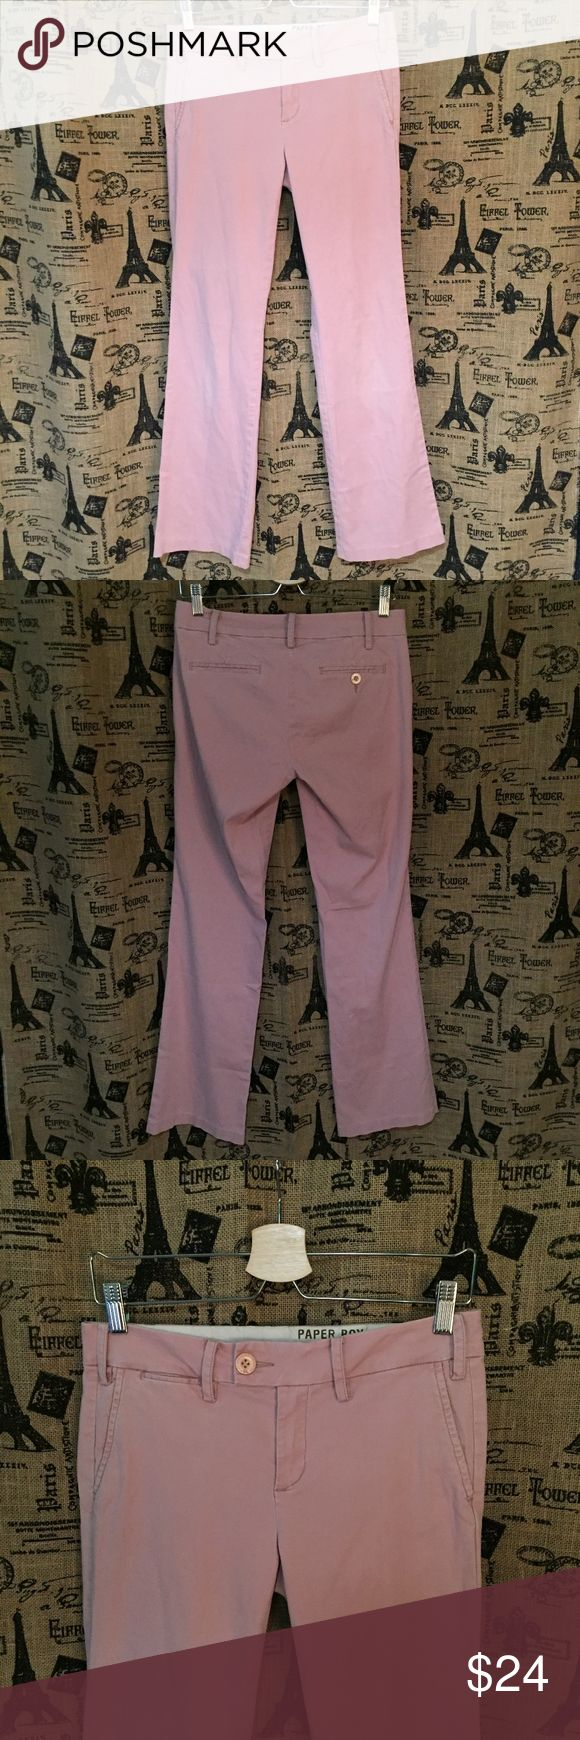 """Anthropologie Paper Boy Light Pink Pants Size 2 Brand: Paper Boy, Anthropologie Size: 2 Description: Button waist, zip fly; small stain see pic Condition: Good **Size tags vary, check measurements** Waist: 32"""" Hip: 35"""" Rise: 8.5"""" Inseam: 32"""" If more measurements are needed, please don't hesitate to ask! Bundle Discount Available! Reasonable offers welcome! No trades please.. Thanks for stopping by!! #Poshmark #Poshmarkapp #Poshmarkcloset Item #2030 Anthropologie Pants Straight Leg"""